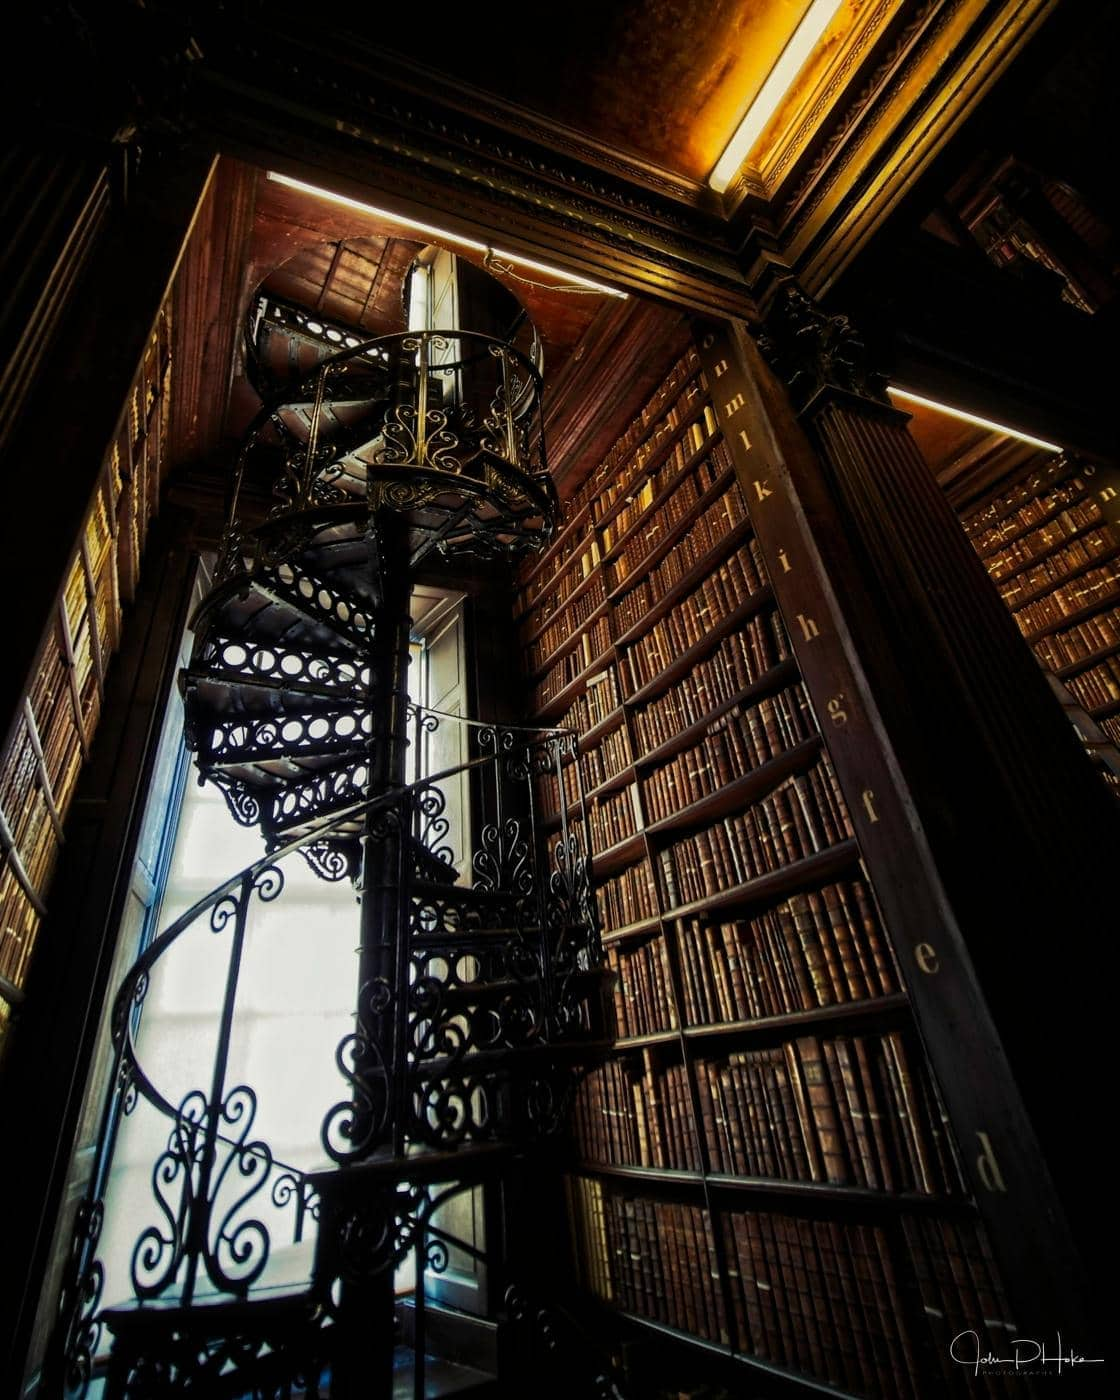 Photos from the Stairway to Book Heaven